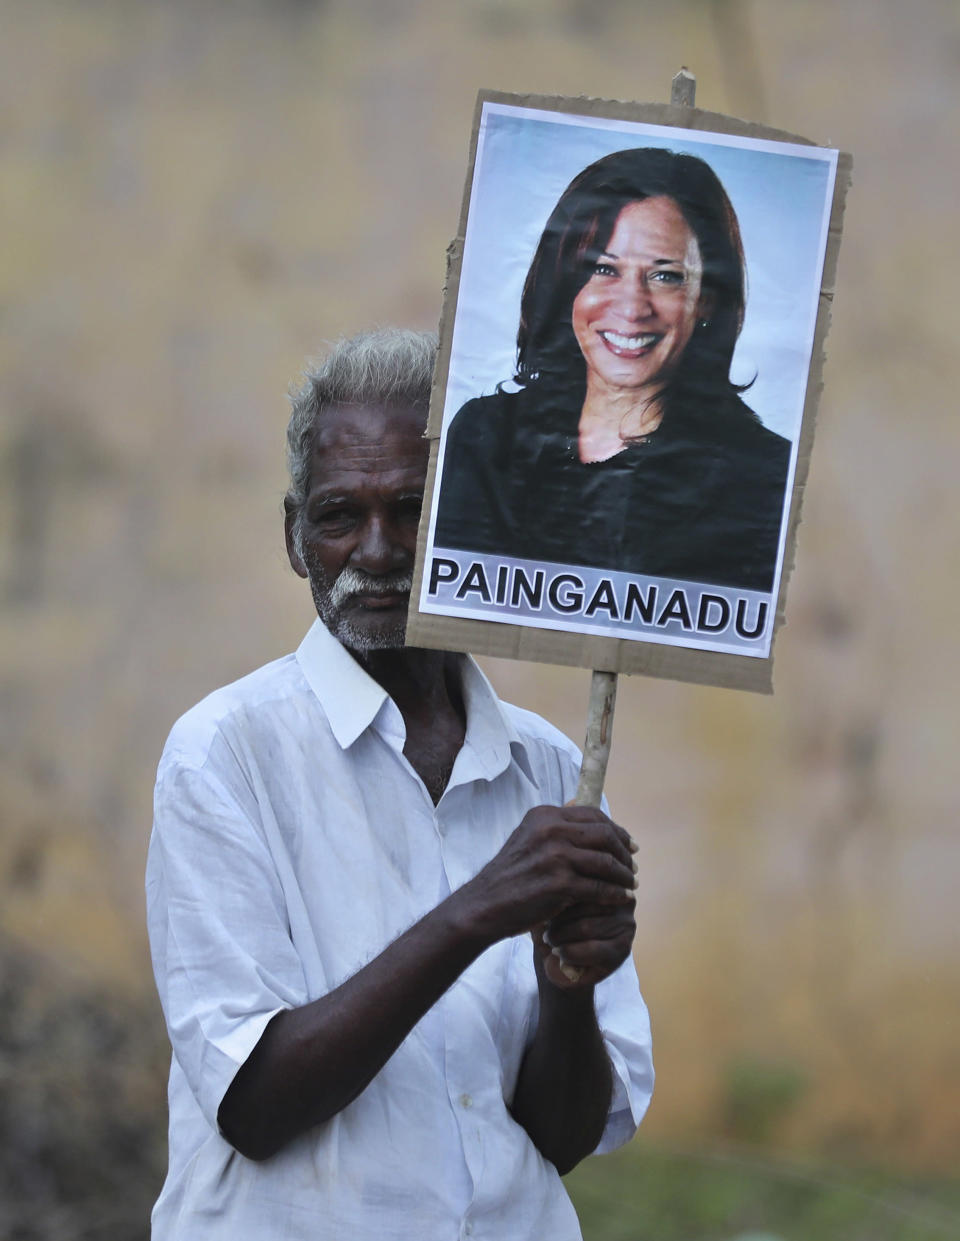 An elderly villager holds a placard of U.S. Vice President-elect Kamala Harris during celebrations for her victory in Painganadu a neighboring village of Thulasendrapuram, the hometown of Harris' maternal grandfather, south of Chennai, Tamil Nadu state, India, Sunday, Nov. 8, 2020. Waking up to the news of Kamala Harris' election as Joe Biden's running mate, overjoyed people in her Indian grandfather's hometown are setting off firecrackers, carrying her placards and offering prayers. (AP Photo/Aijaz Rahi)